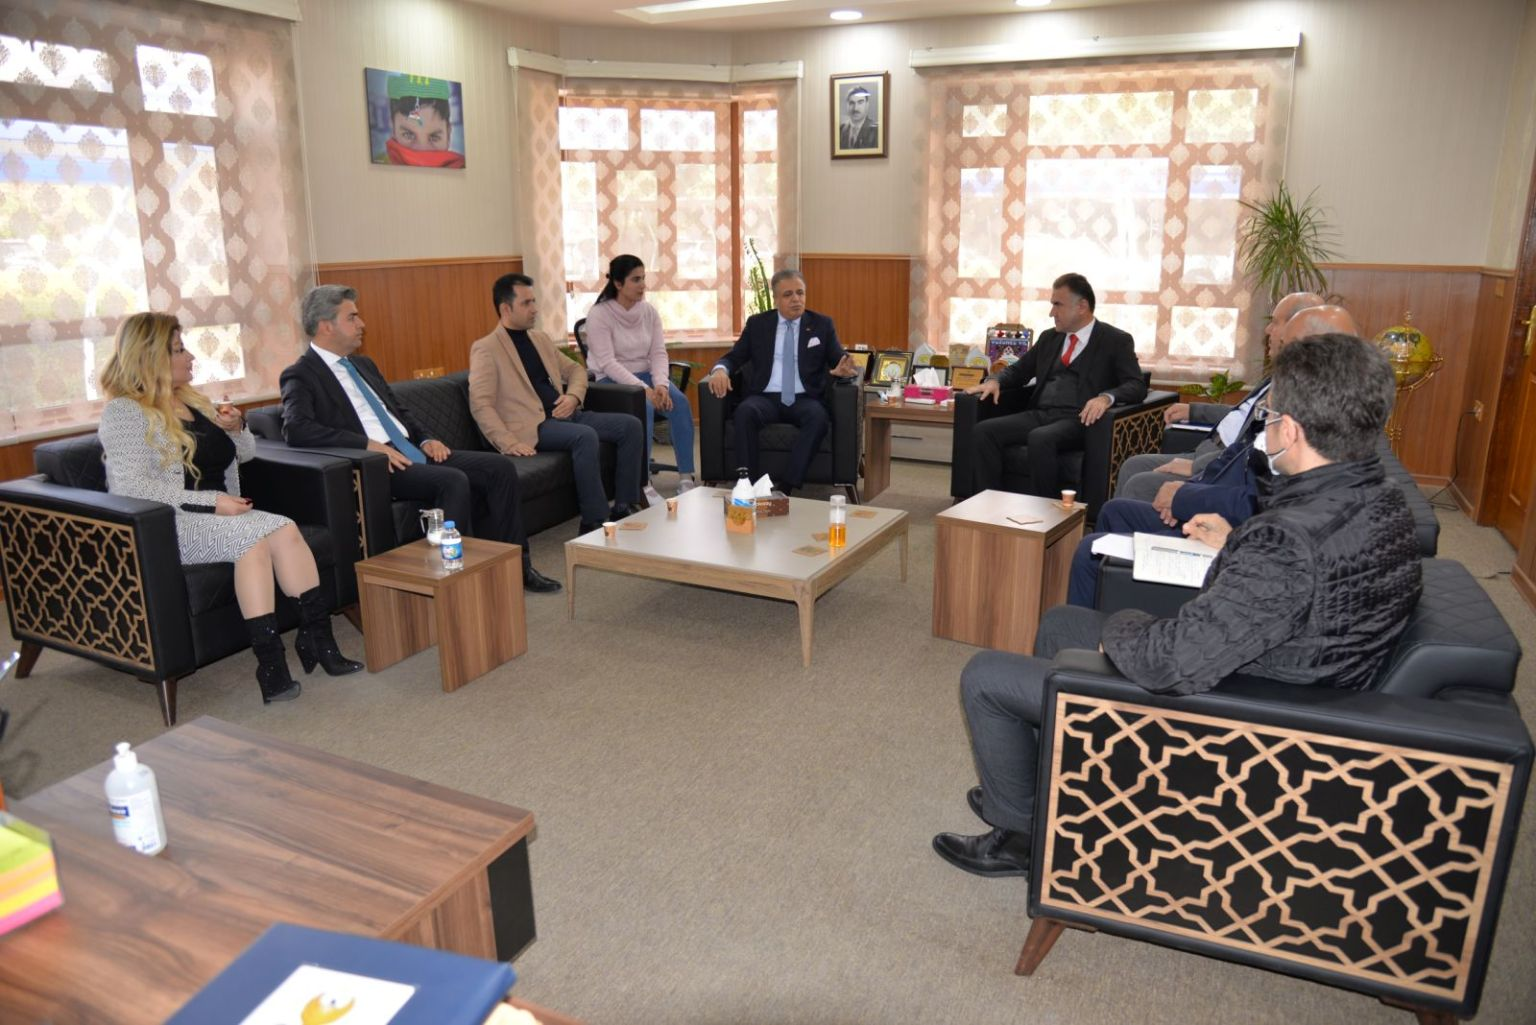 The Rector Of The EPU Receives The President Of The International University Council (IUC)